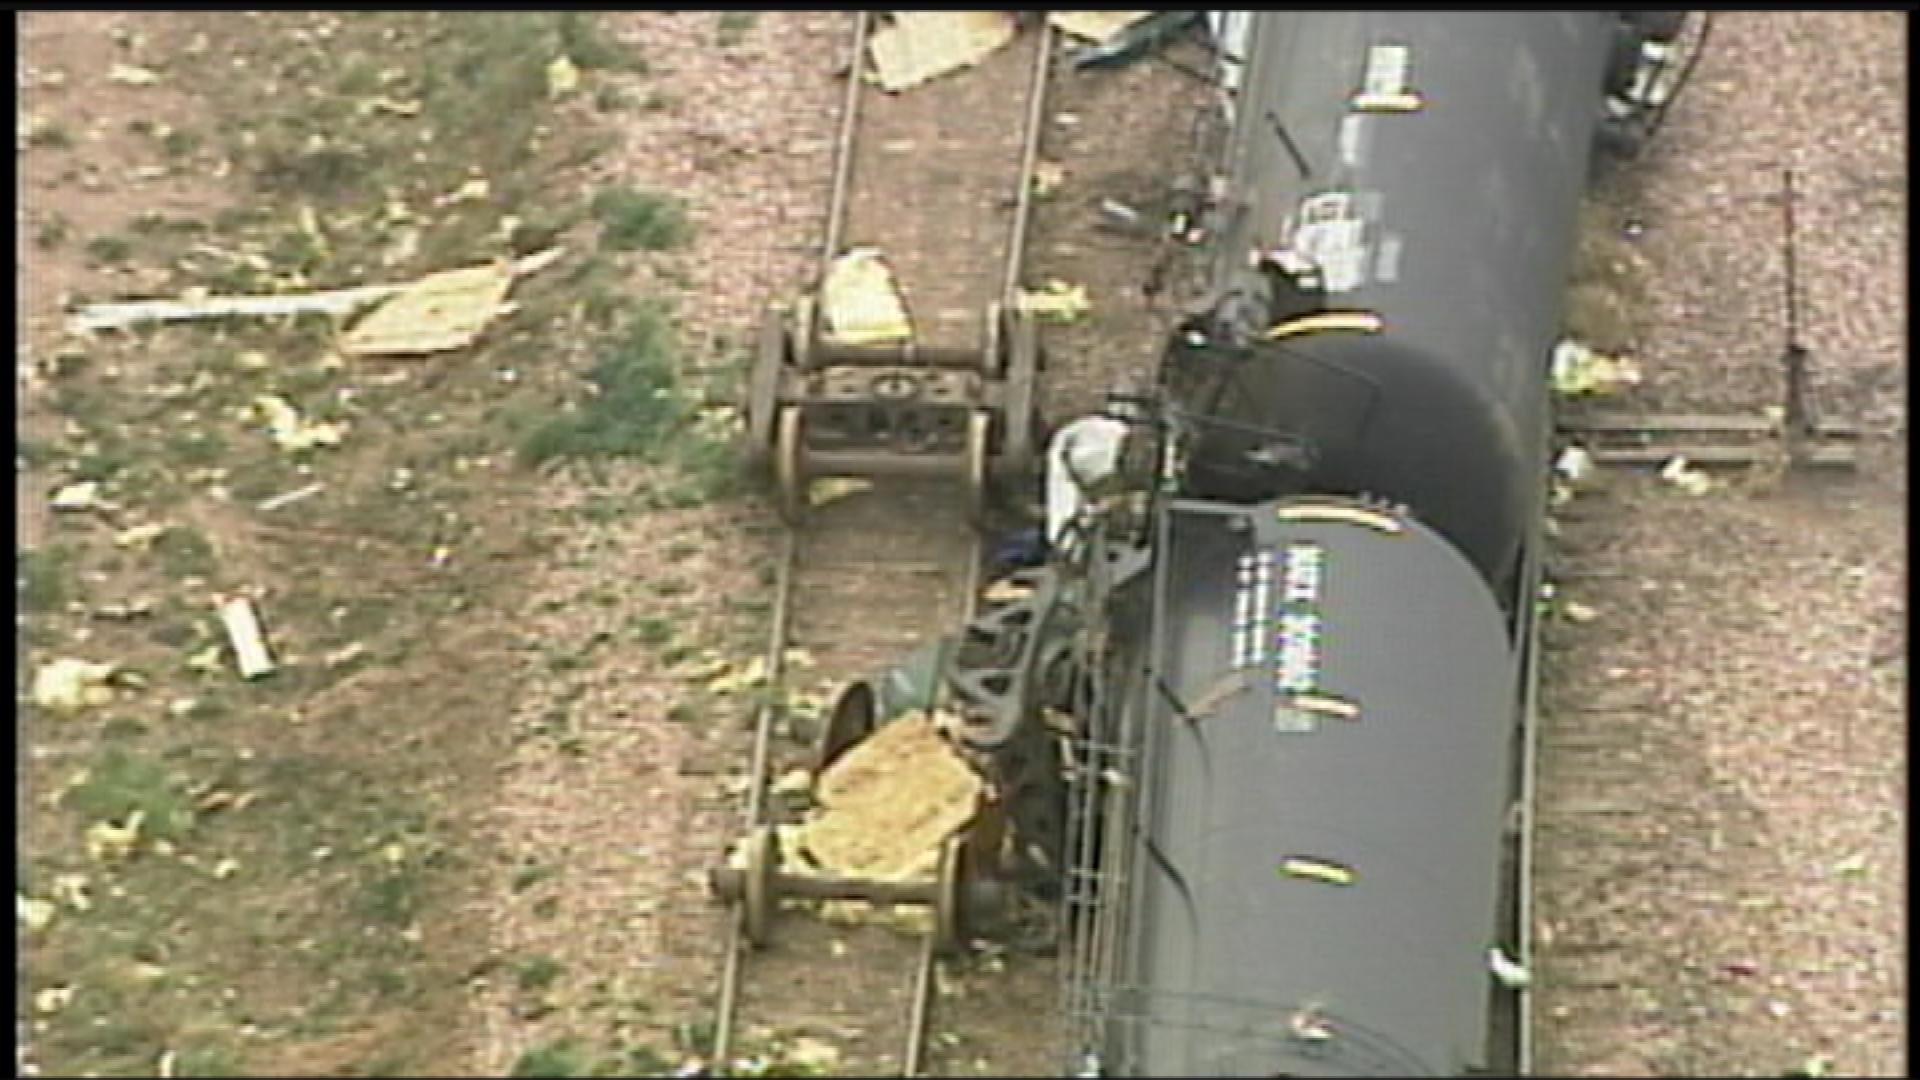 Train cars were thrown over during a strong tornado that hit Northern Colorado on May 22, 2008.(credit: CBS)